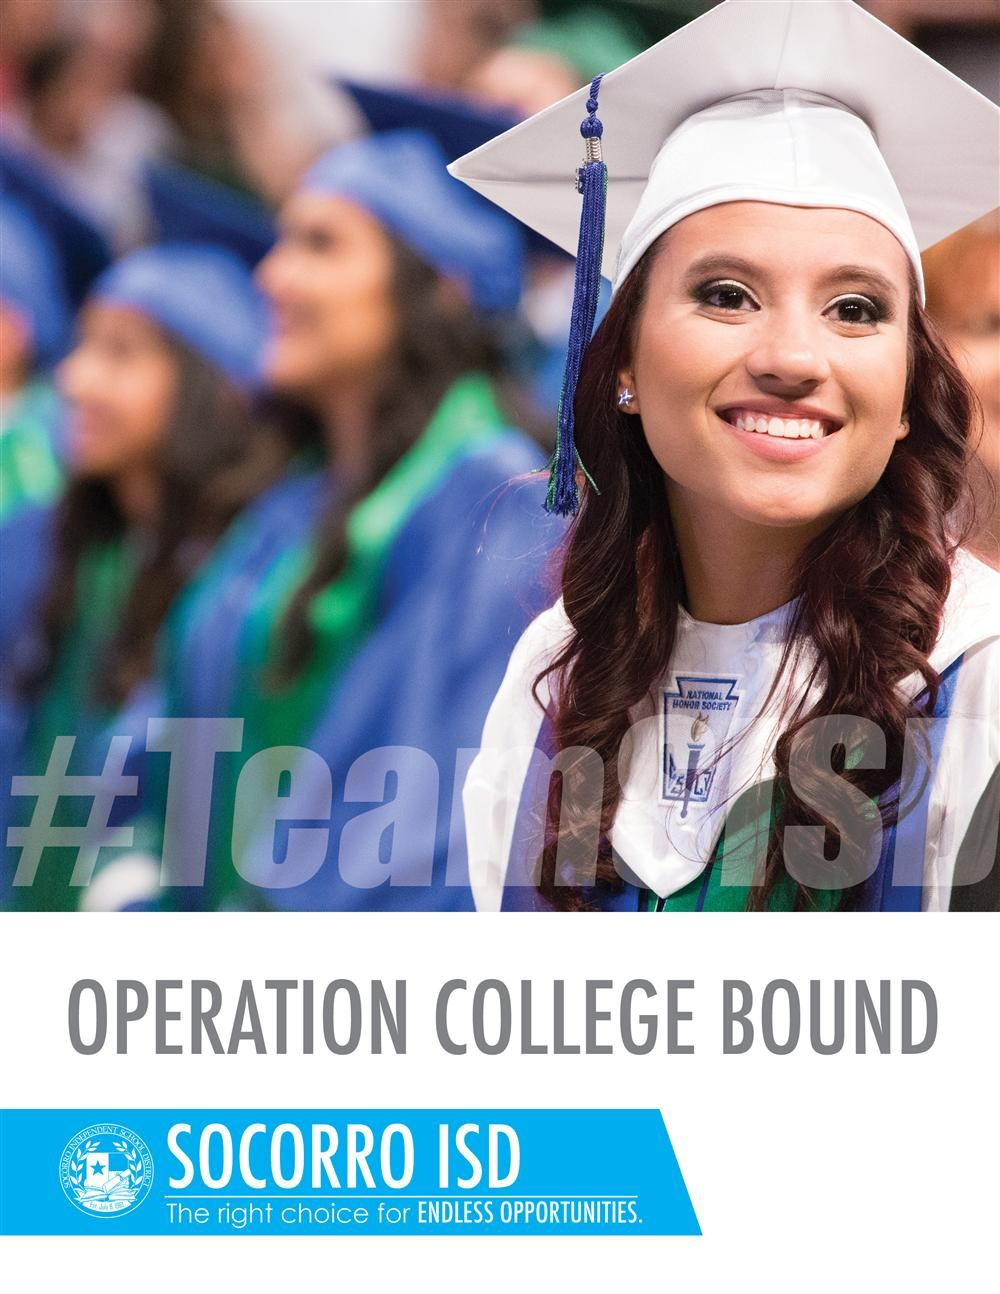 2017 Operation College Bound Report Image